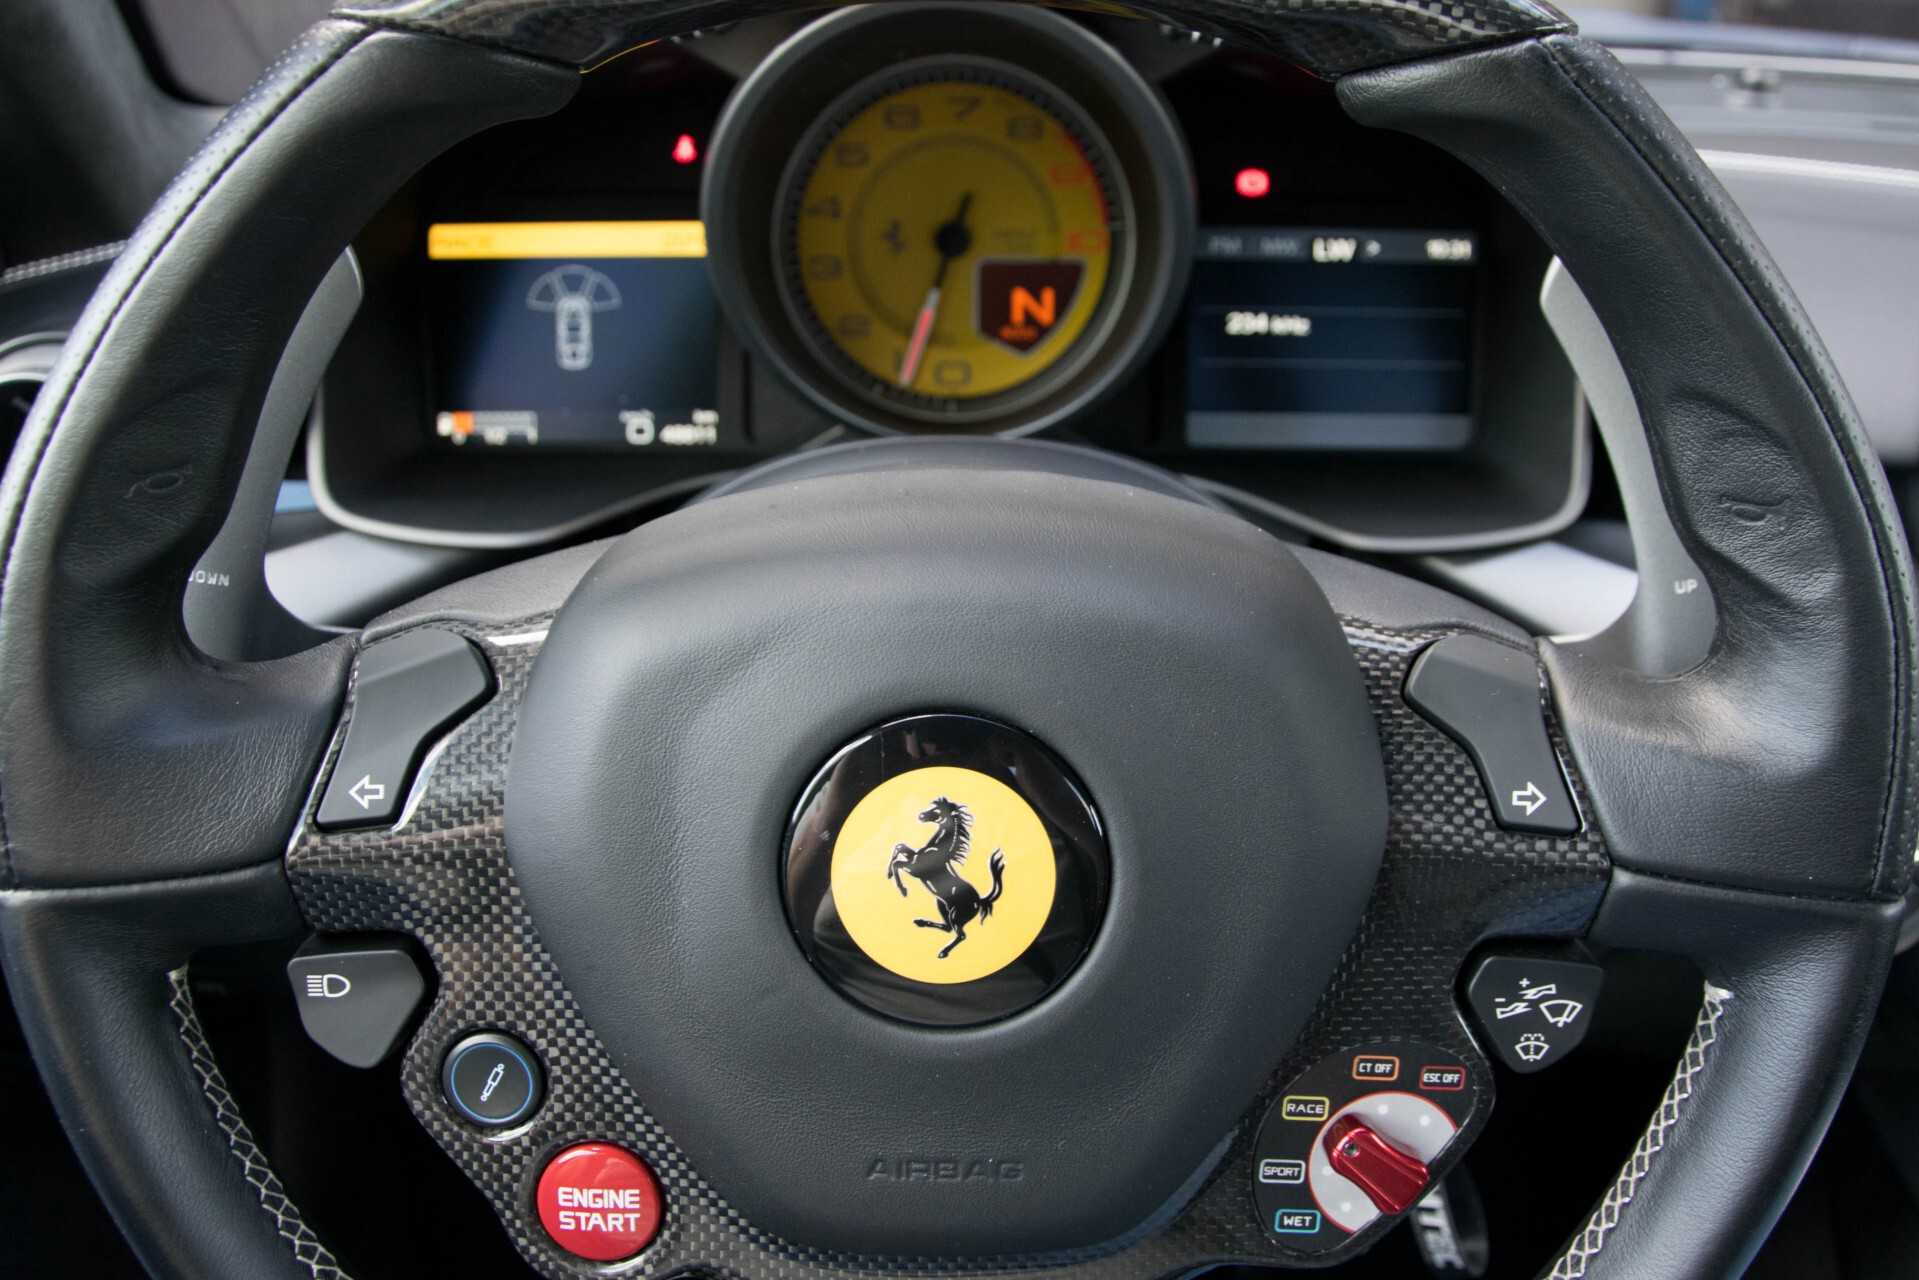 Ferrari F12 6.3 Berlinetta Capristo/Carbonseats/Led/Passenger Display Aut7 Foto 6